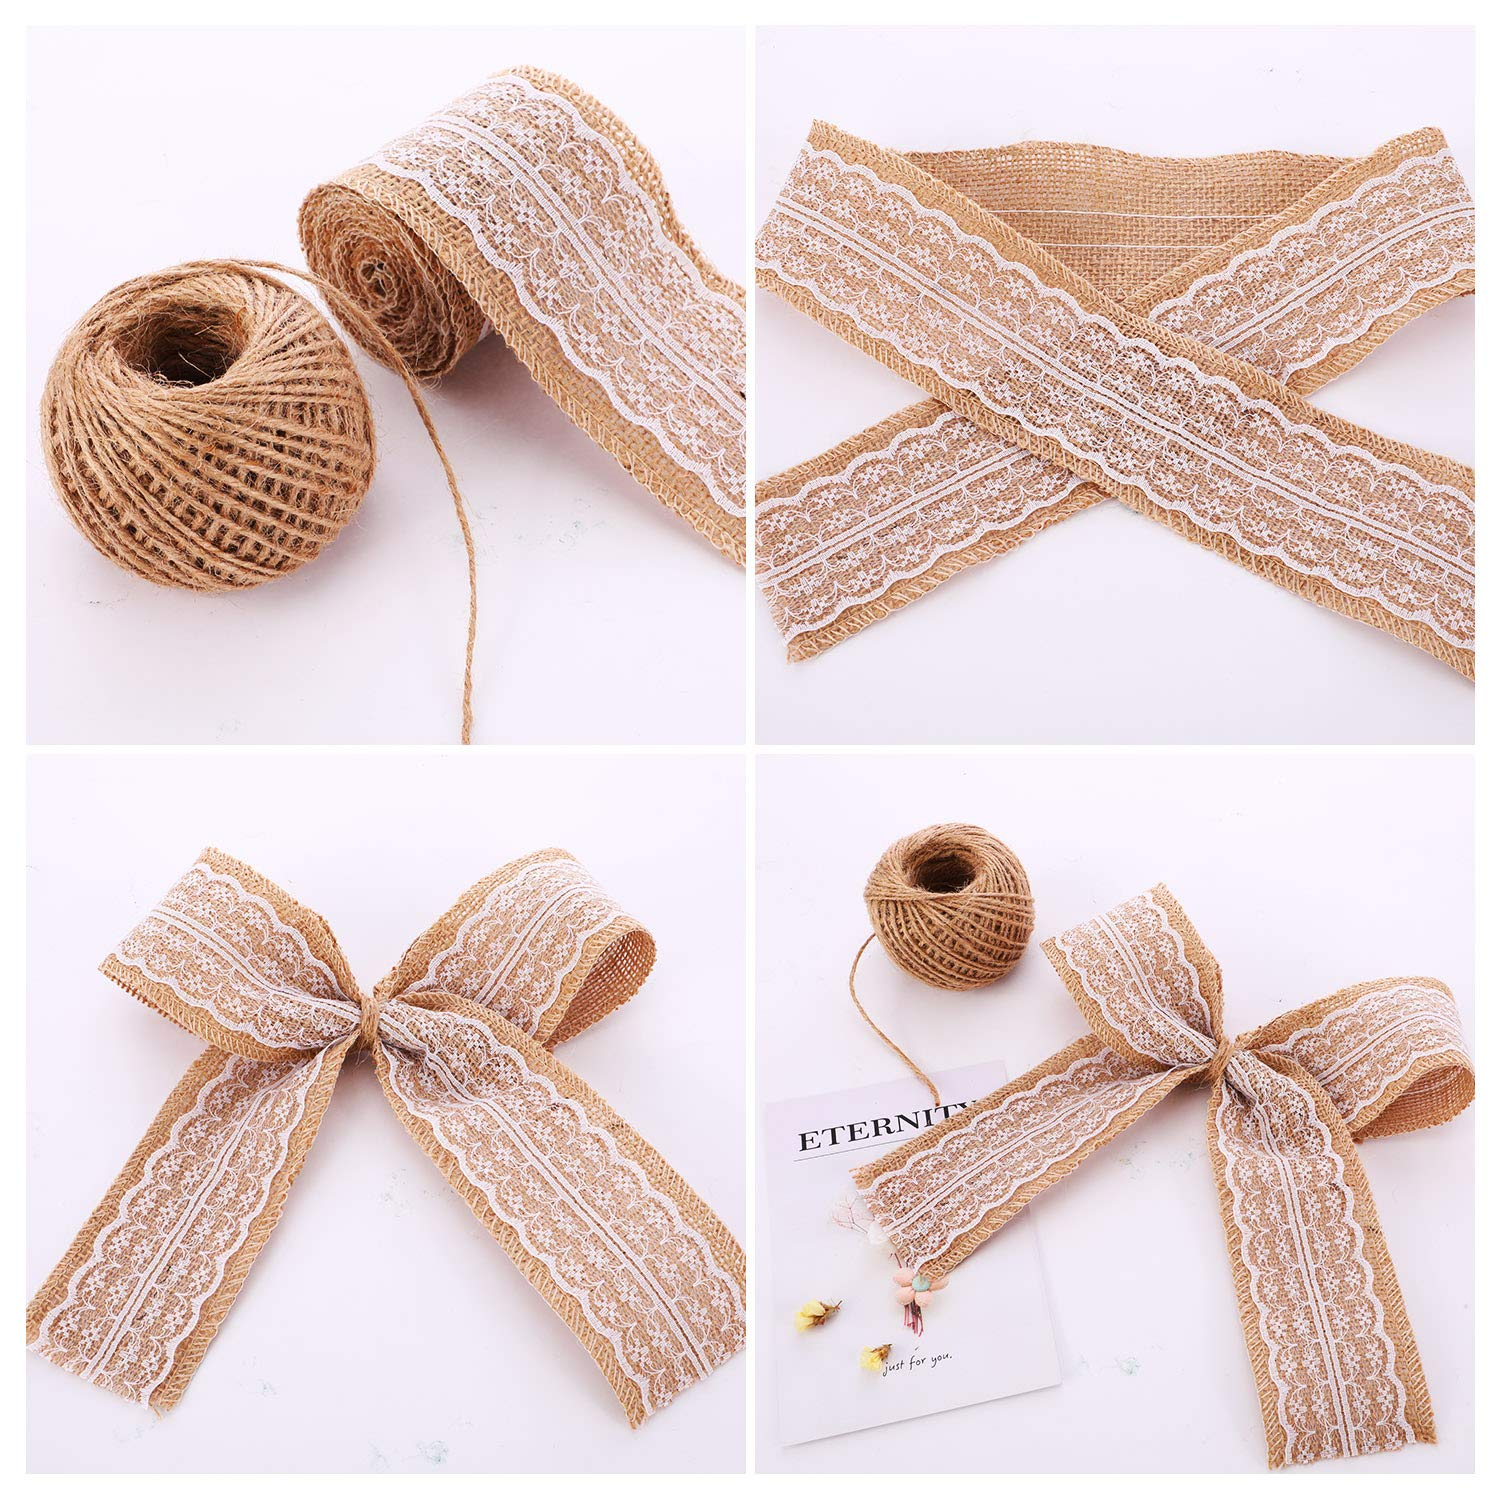 Yaomiao Natural Burlap Flowers Set, Include Lace Burlap Ribbon Roll, Handmade Rustic Burlap Flowers and Twine Ribbon for Wedding Home Embellishment by Yaomiao (Image #4)